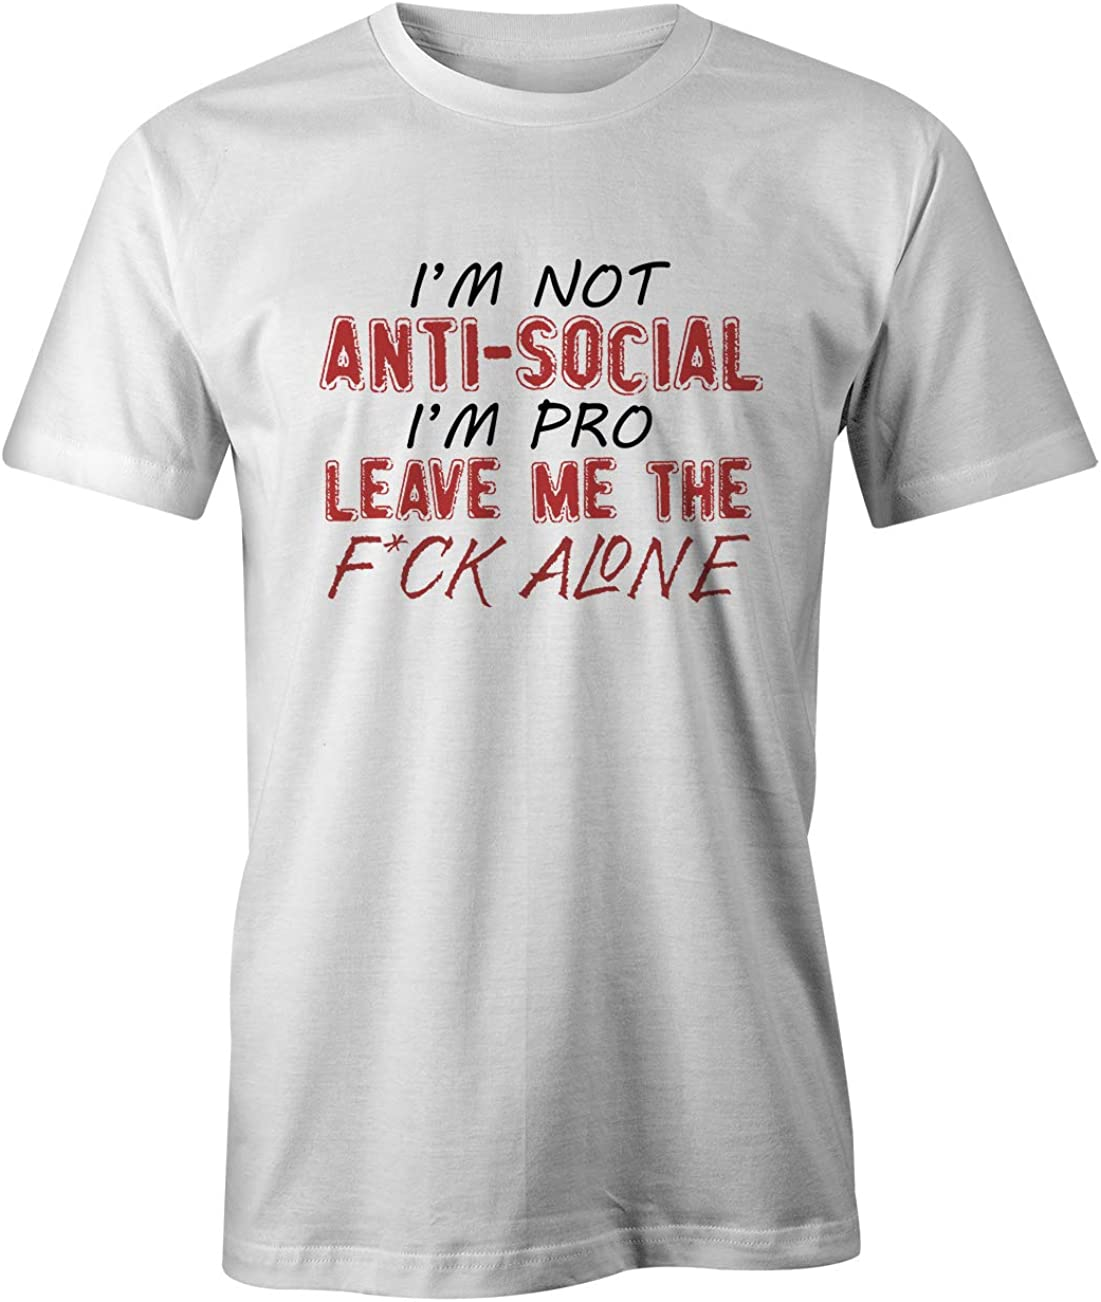 Im Not Anti-Social Im Pro Leave Me Alone Gracioso Introvert T-Shirt Camiseta Hombres: Amazon.es: Ropa y accesorios